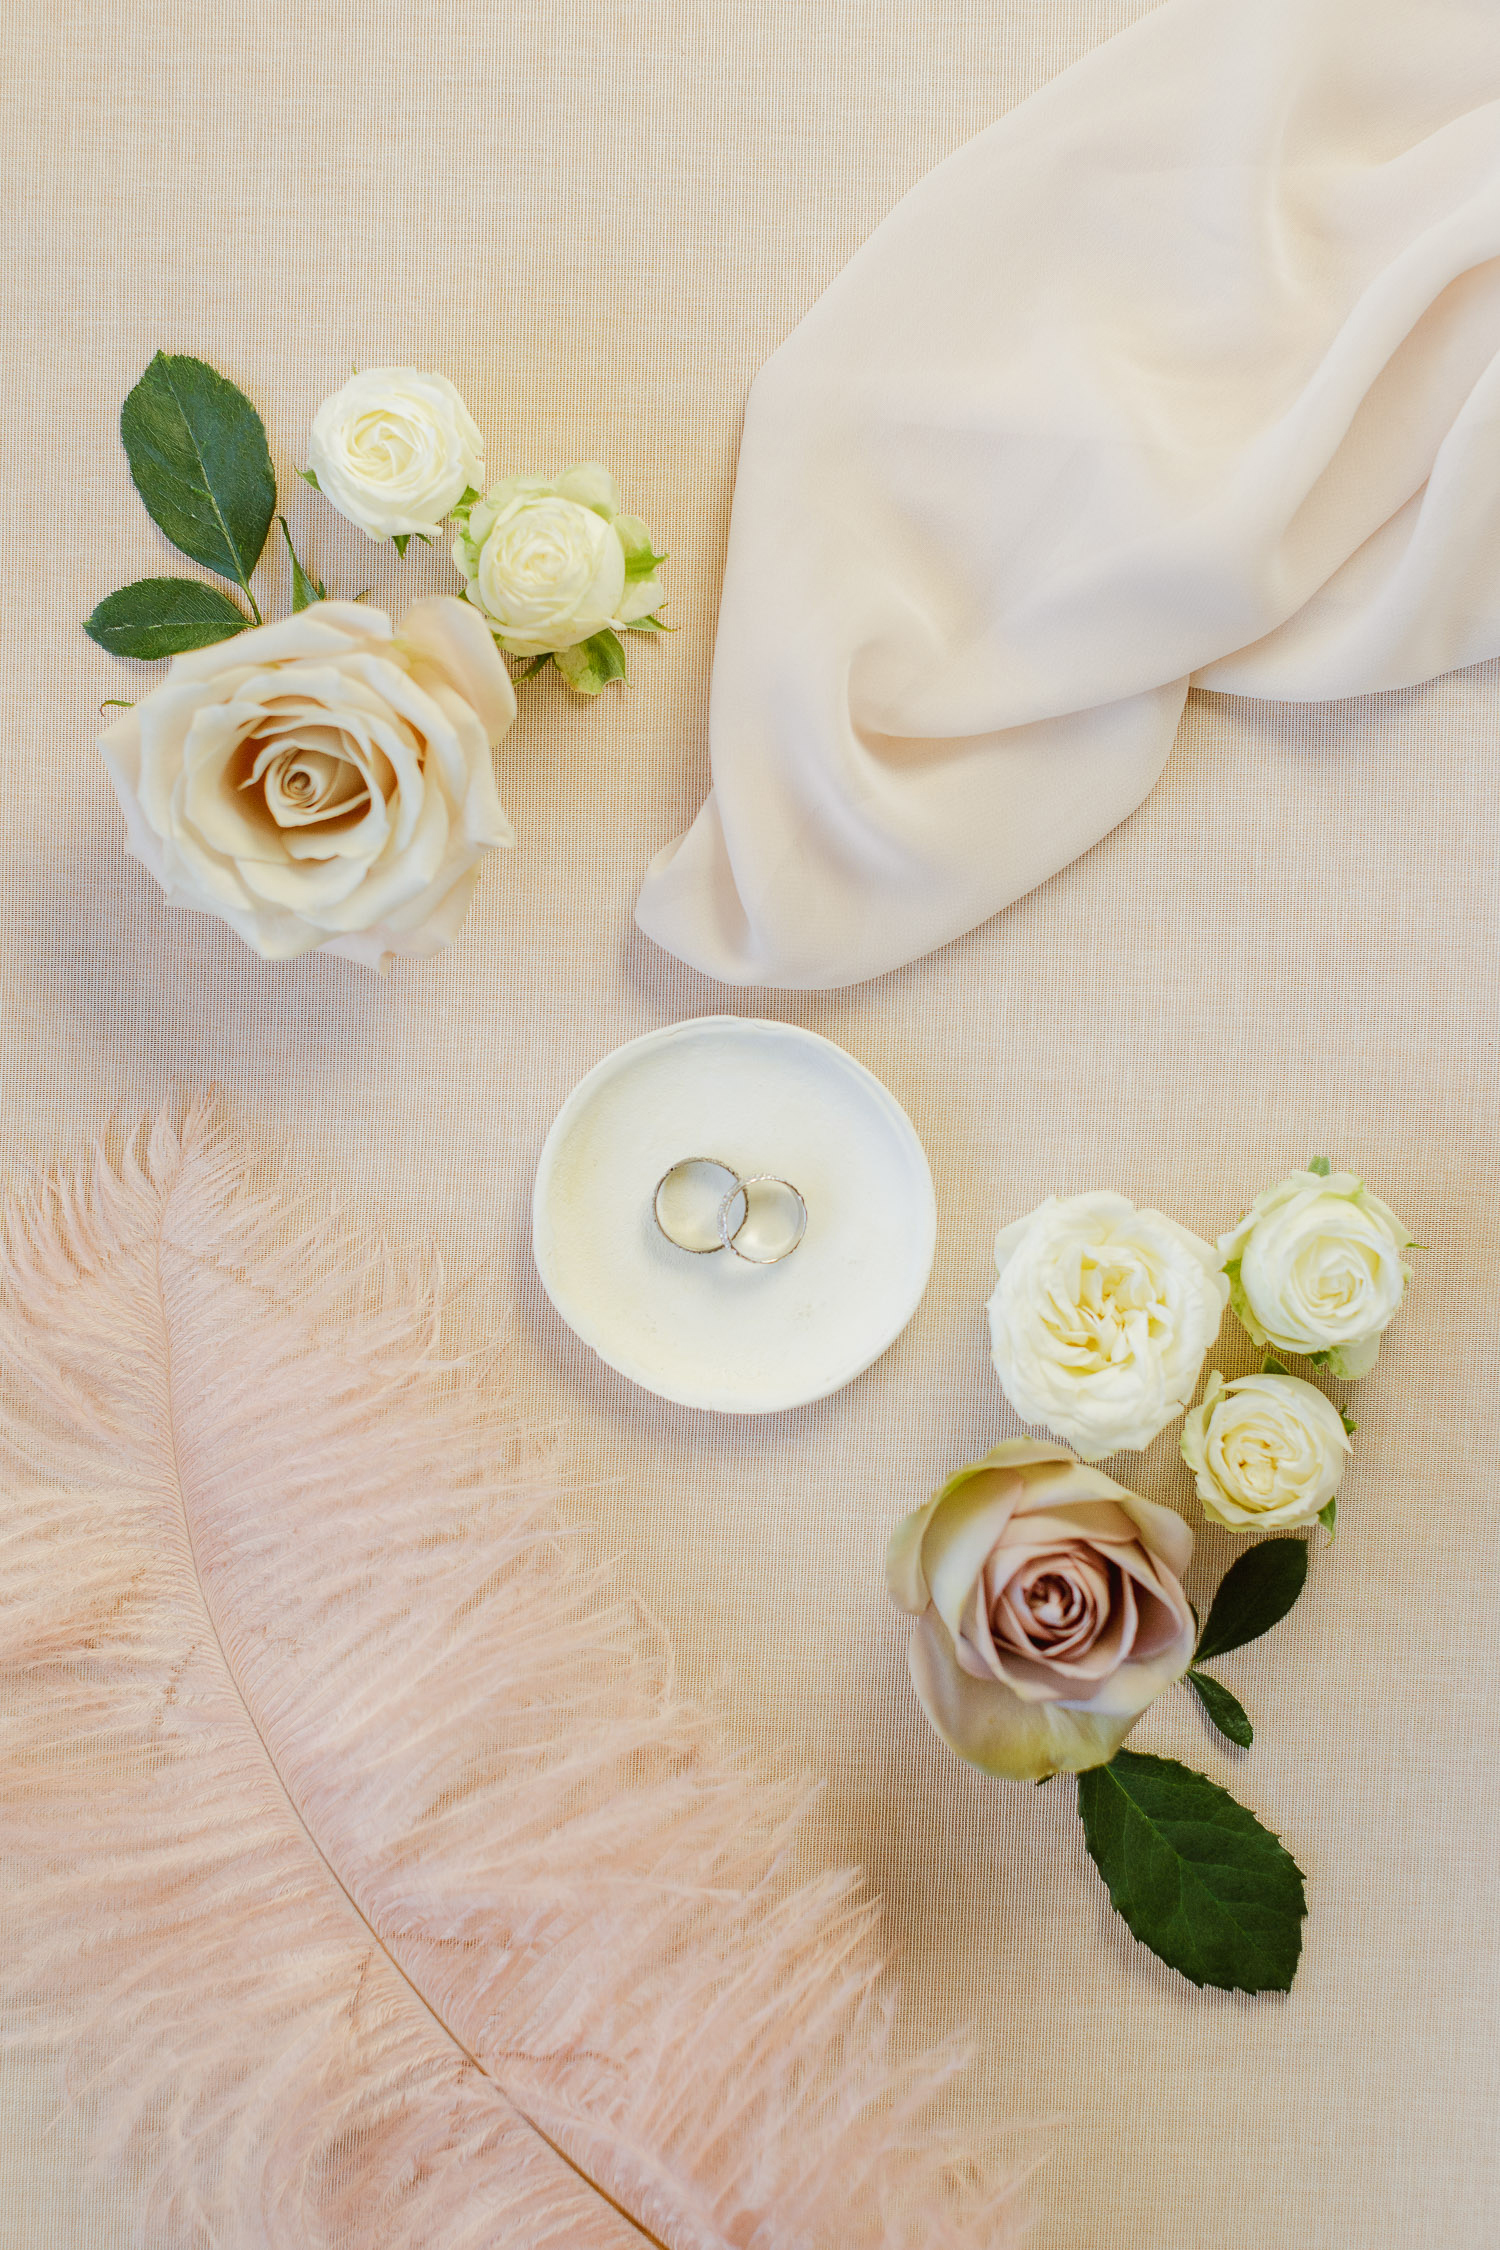 Wedding rings flat-lay photography styling perfectly with beautiful white roses